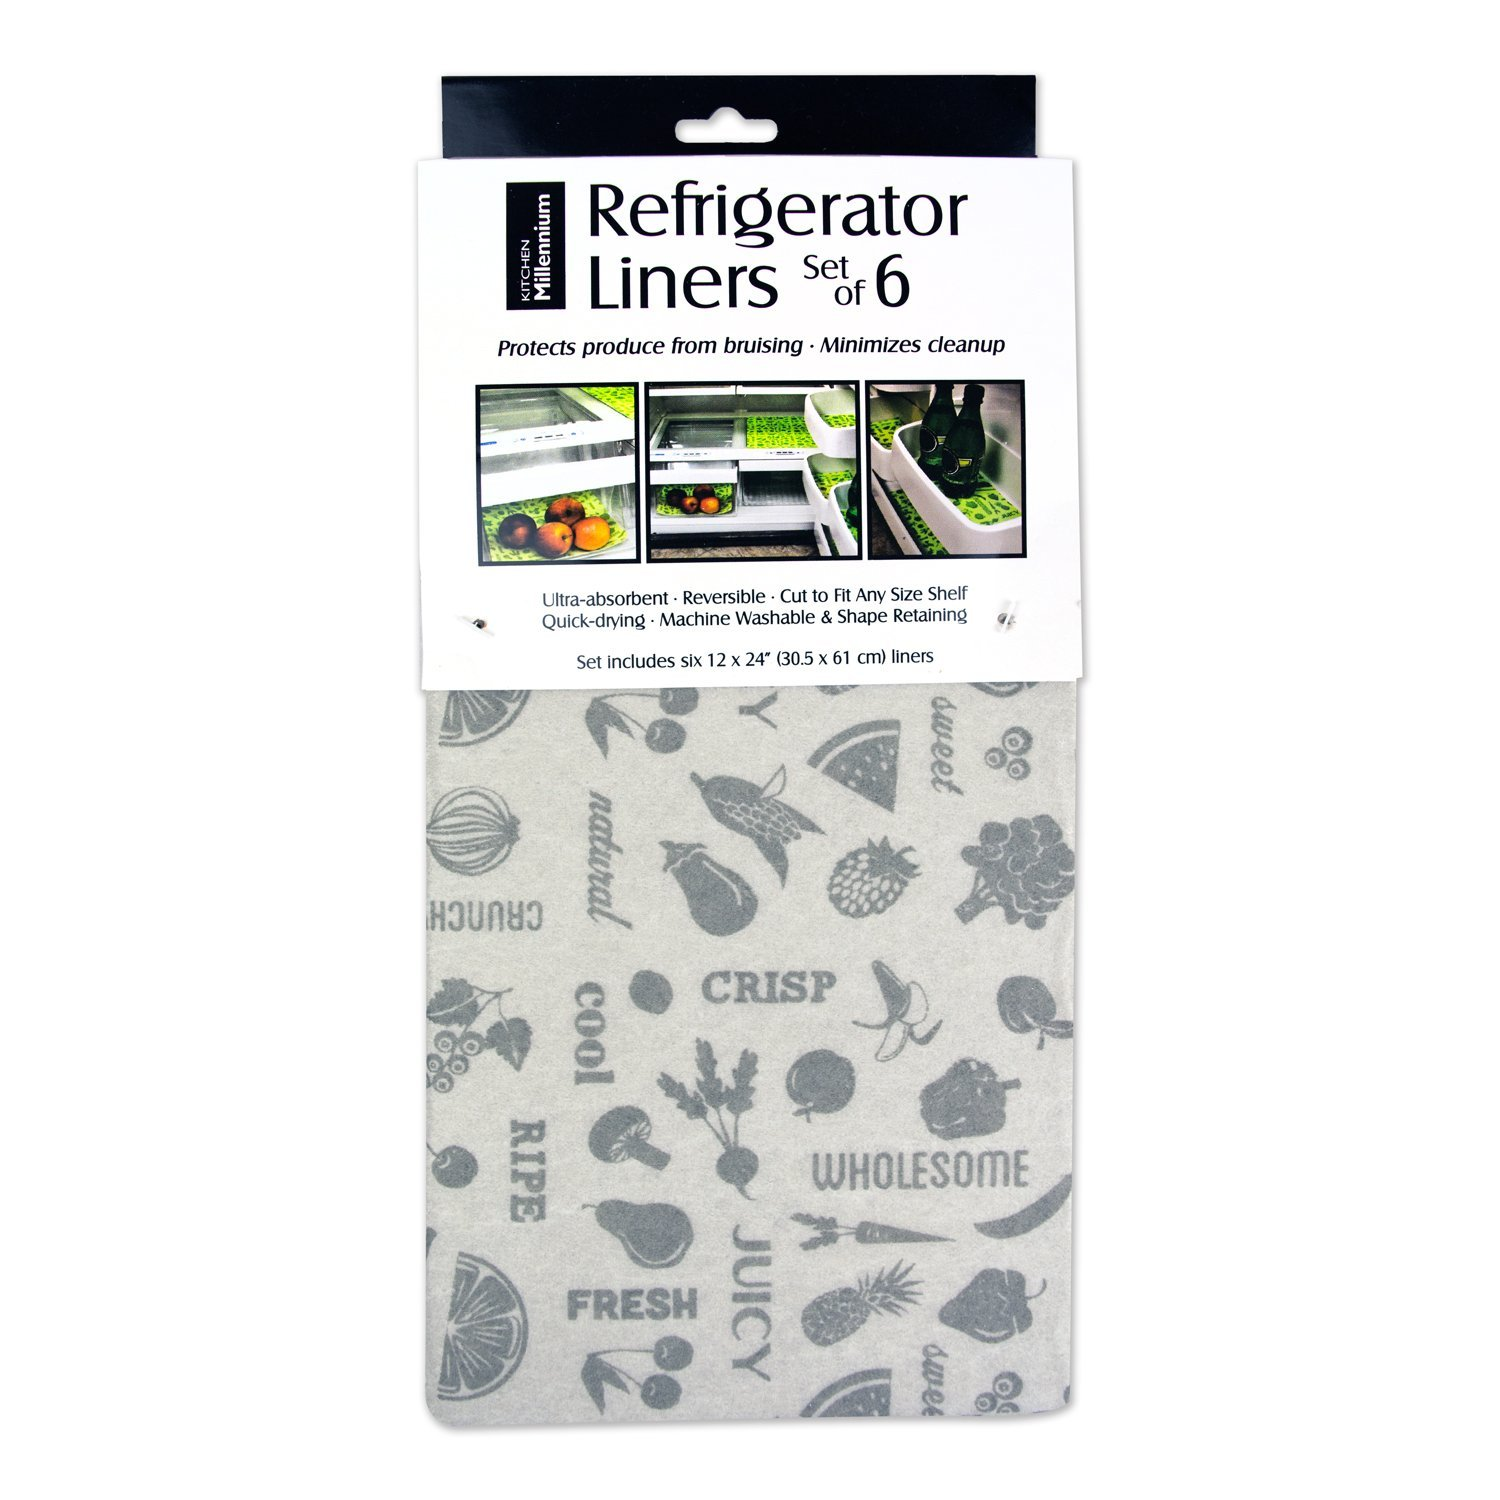 """DII Non Adhesive Cut to Fit Machine Washable Fridge Liner For Drawers, Bins, Trays, Protect Produce, Set of 6, 12 x 24"""" - Gray"""